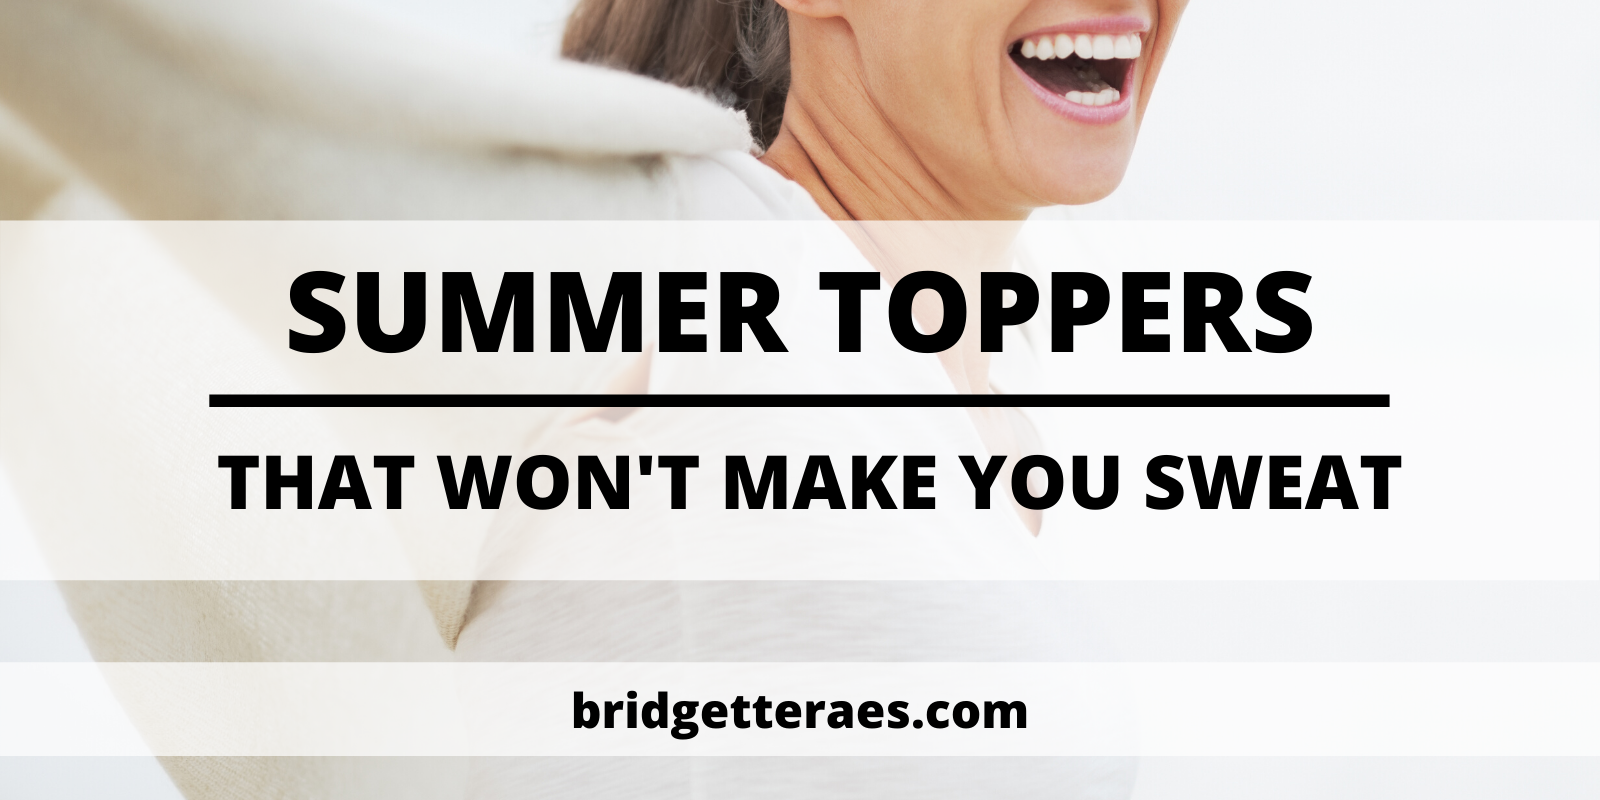 Summer Toppers that won't Make You Sweat